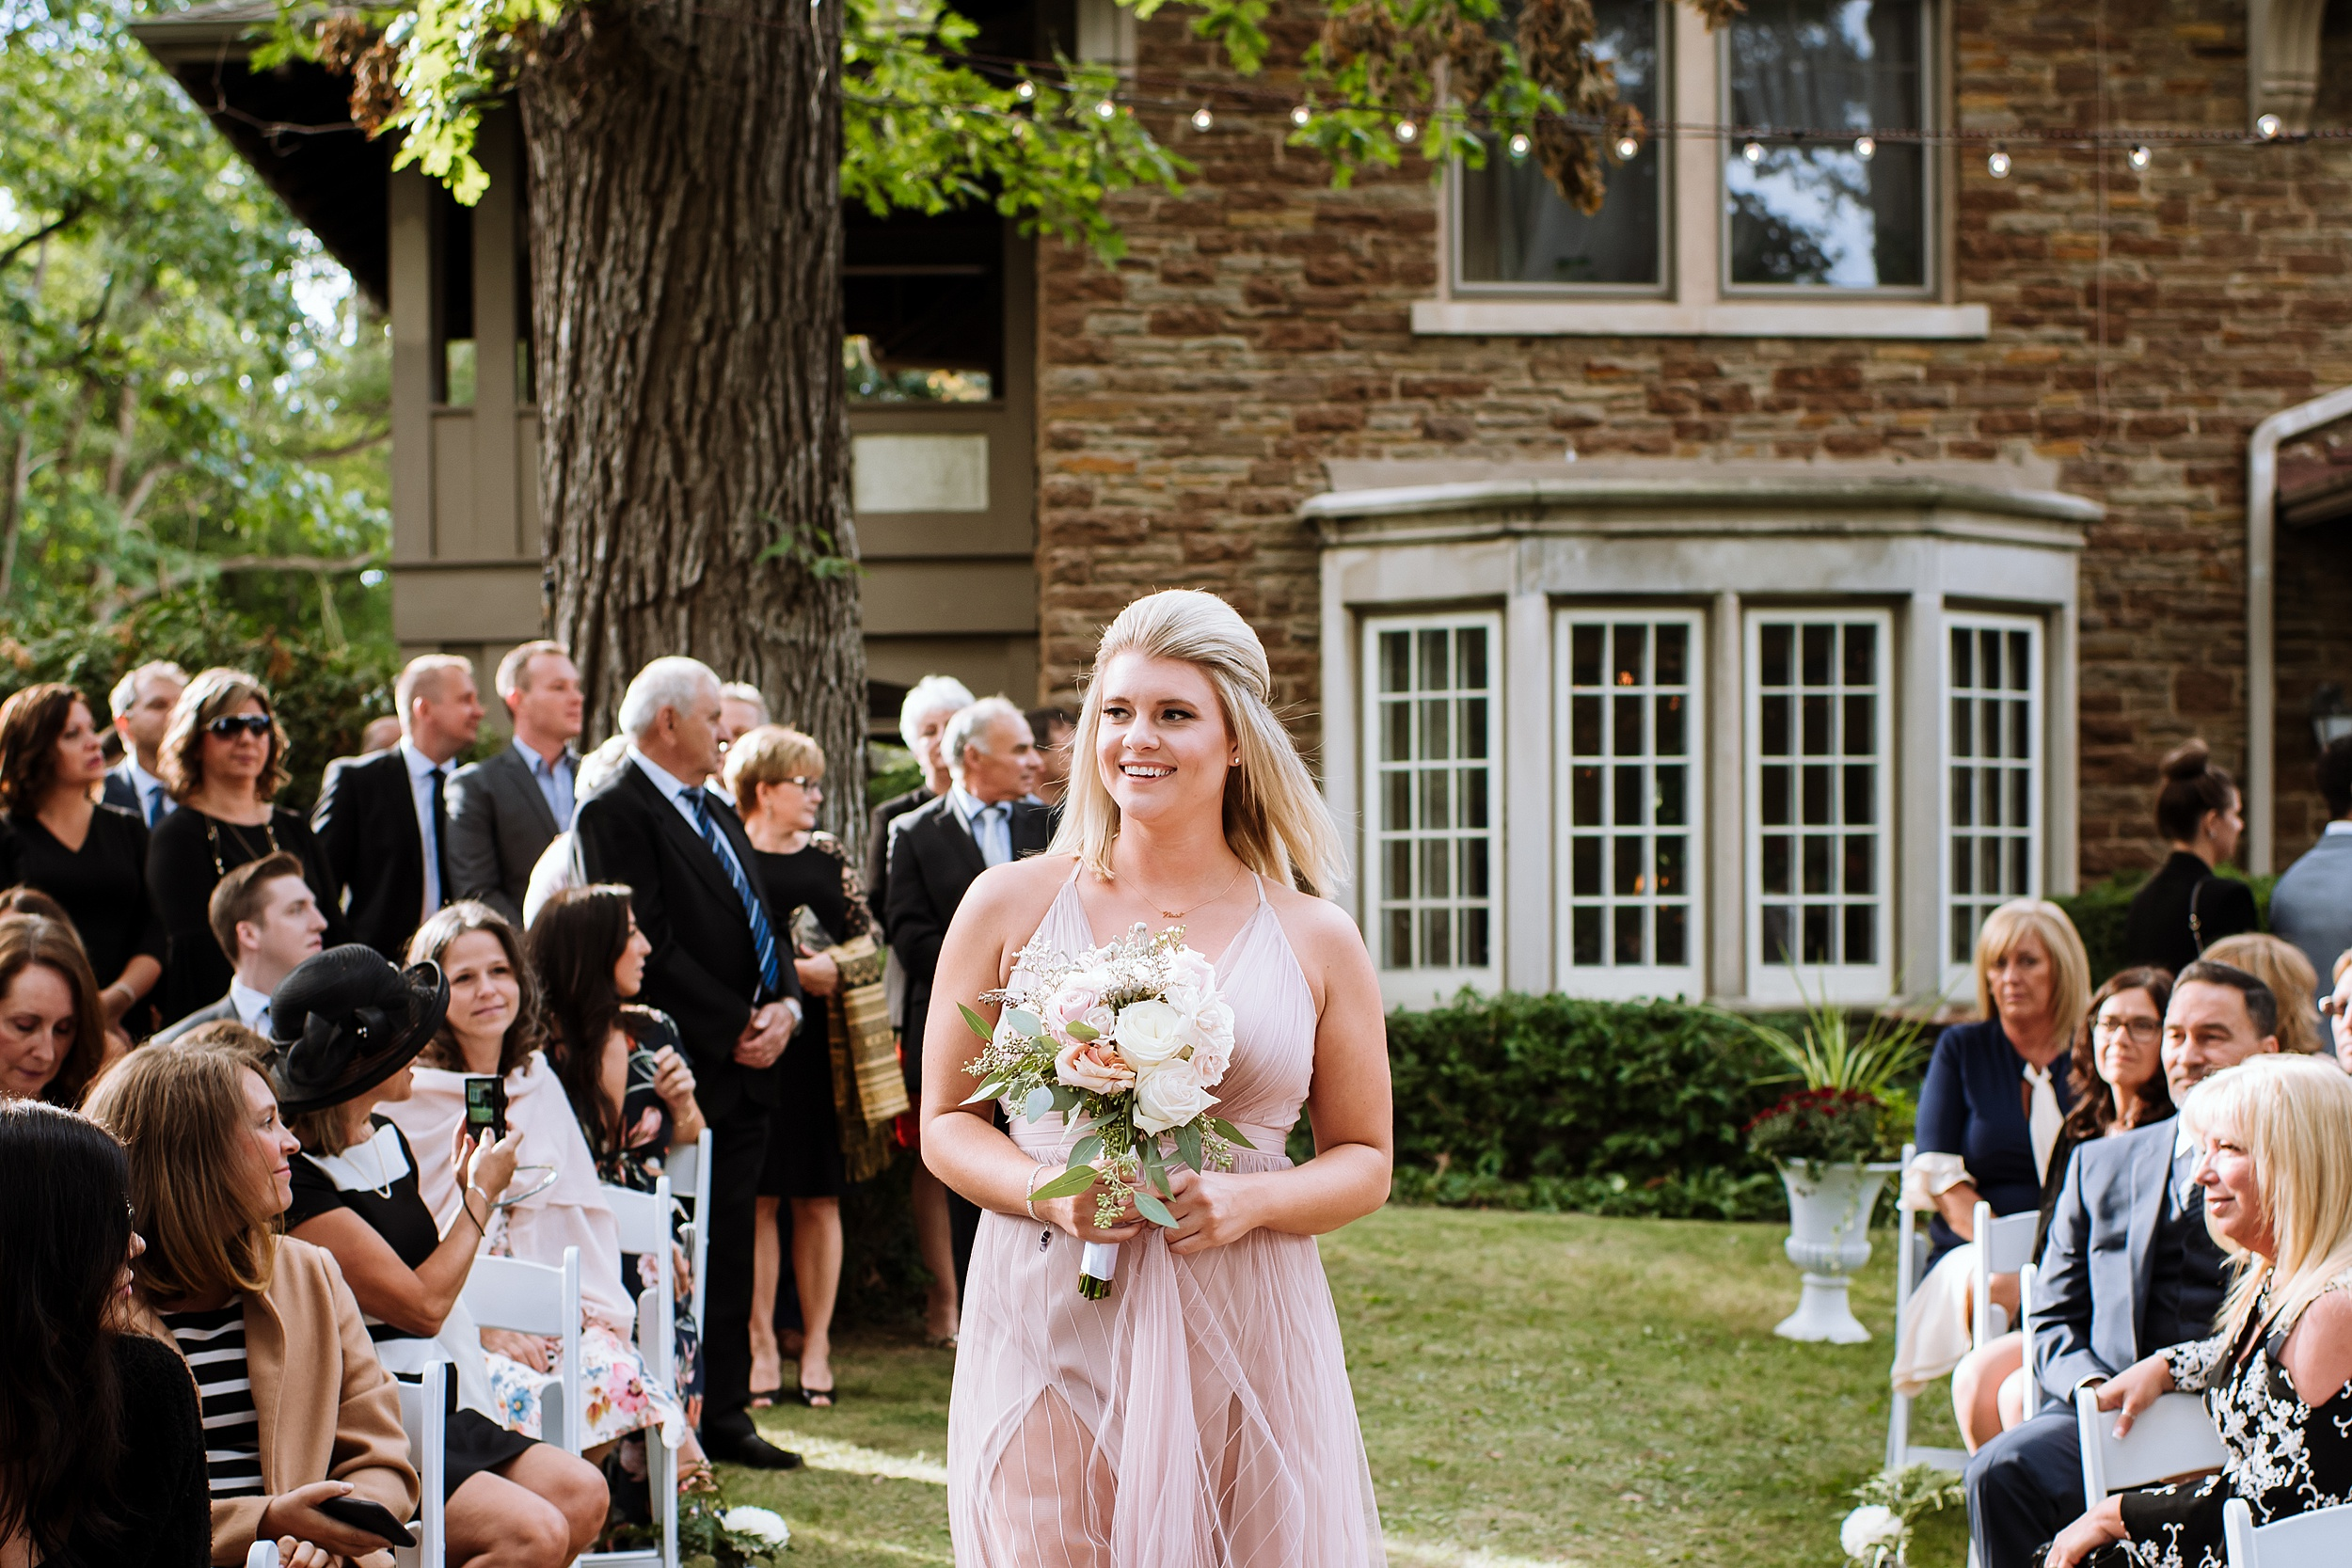 Rustic_Backyard_Wedding_Toronto_Photographer086.jpg